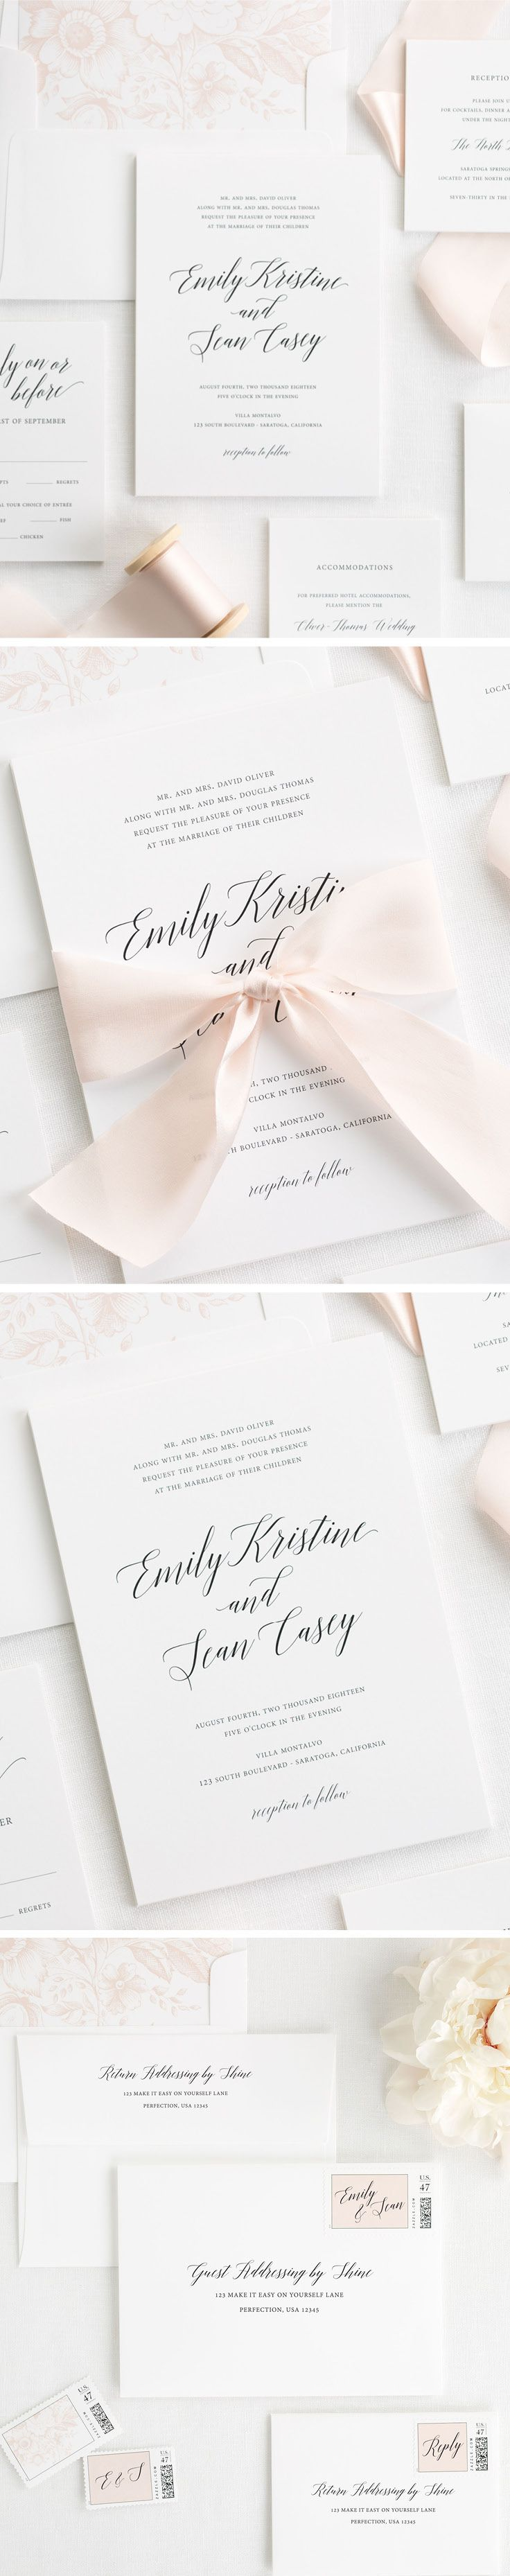 Let your wedding day shine with our romantic design, Garden Romance. This simple and classic wedding invitation mixes a romantic calligraphy font and simple block font to make subtle statement. This wedding invitation suite features a pretty blush pink floral envelope liner and is perfectly tied up with our custom dyed 100% silk ribbon in pale pink. Personalize your perfect wedding invitation with Shine!